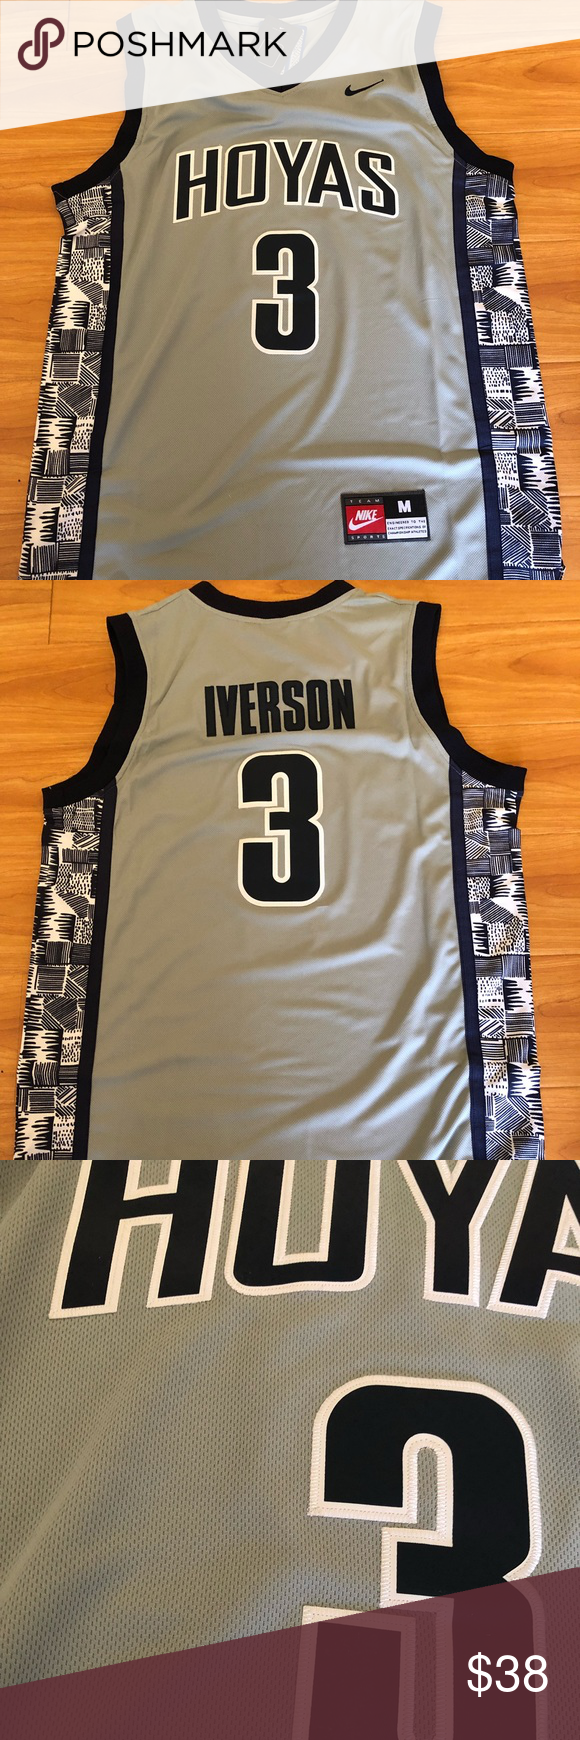 466eef92 Allen Iverson #3 Georgetown Hoyas Jersey Brand new with tag, all the  numbers and letters are stitched Nike Shirts Tank Tops